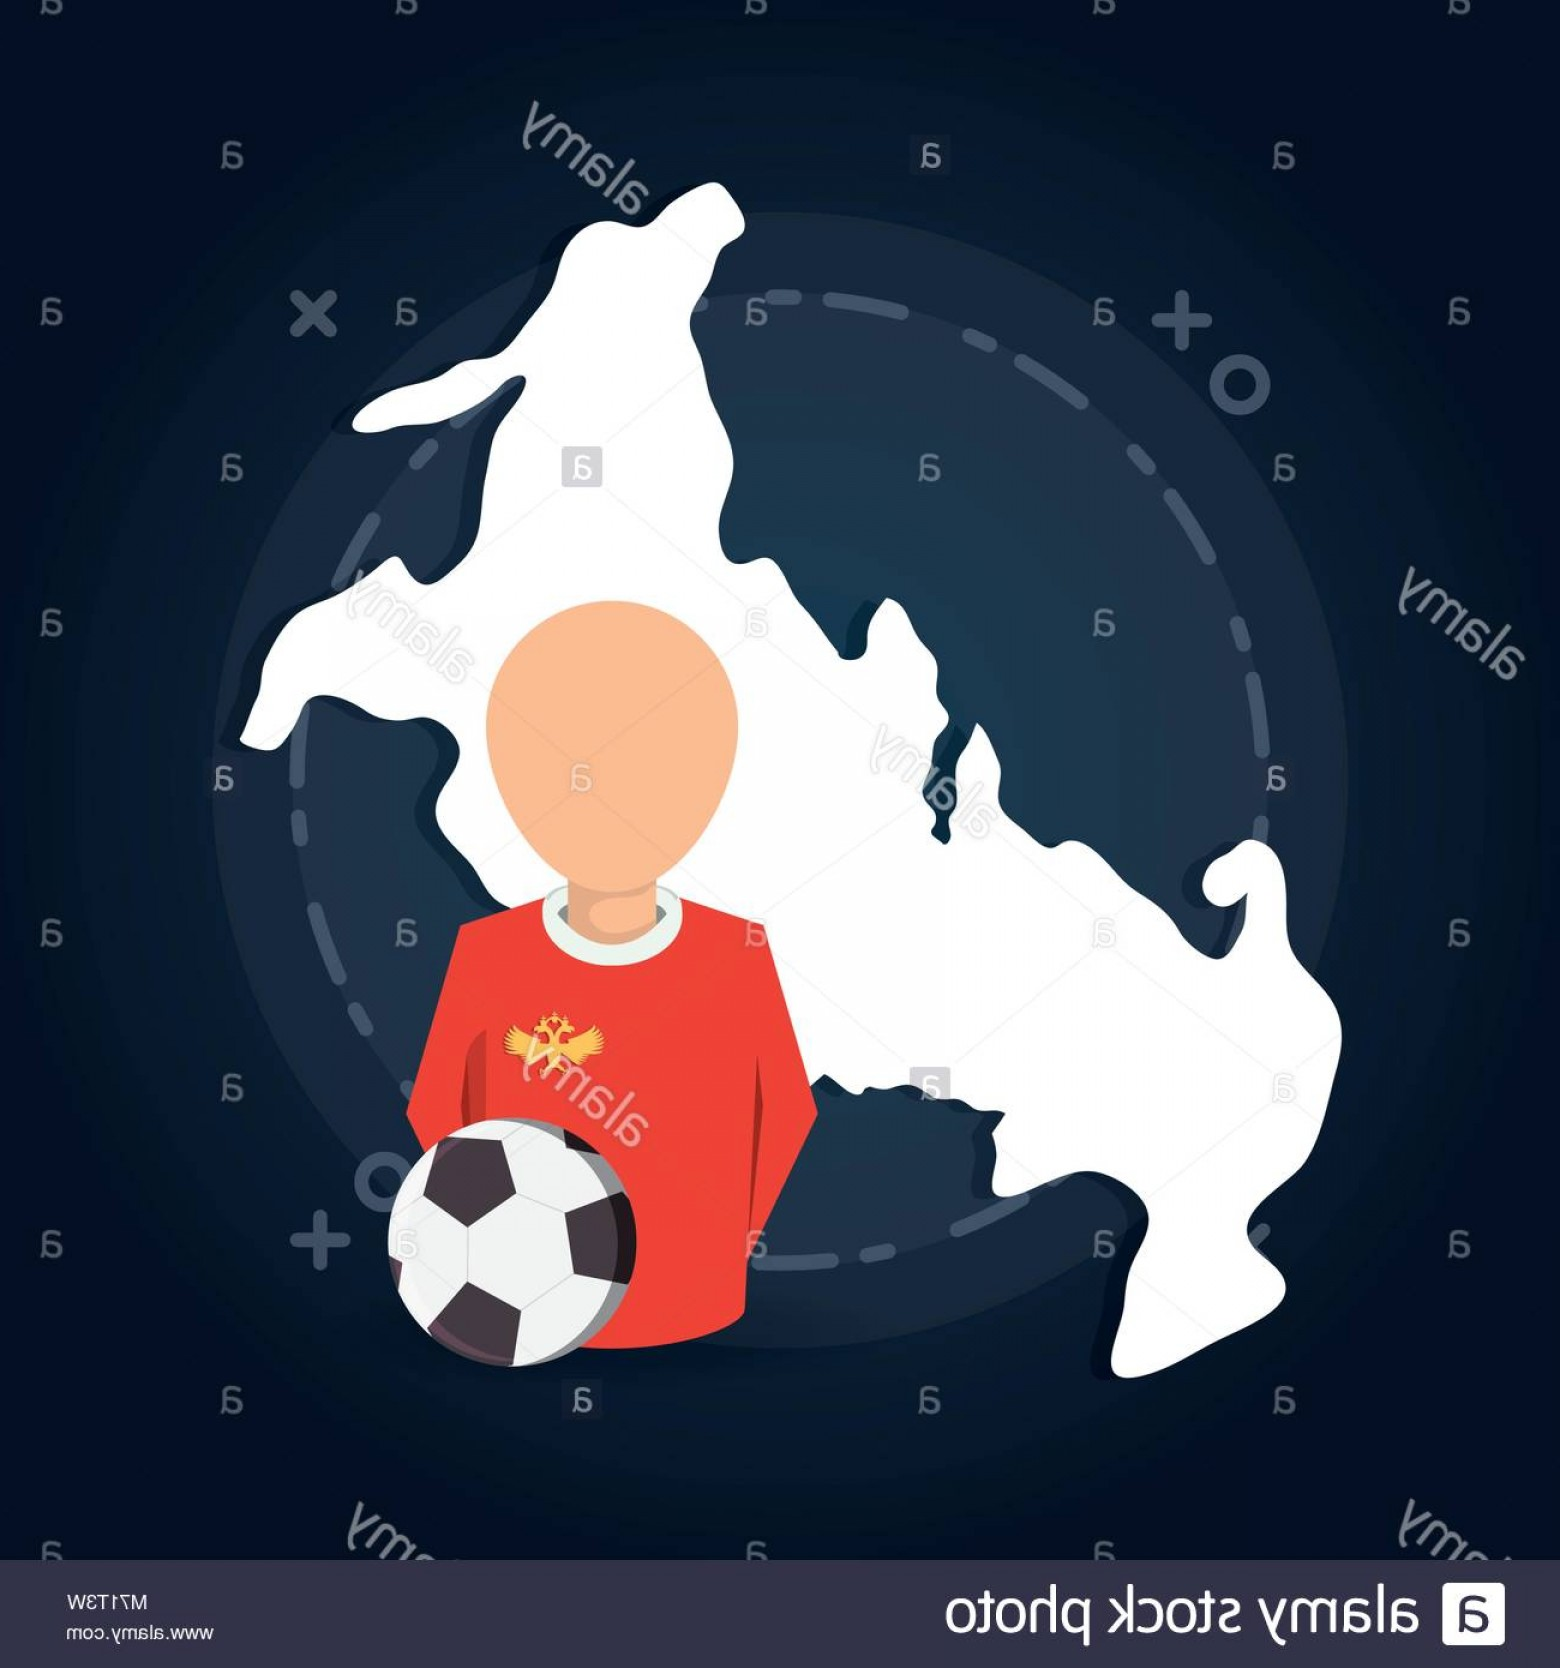 Soccer Blue Background Vector Graphics: Stock Photo Russia Map And Avatar Soccer Player Over Blue Background Colorful